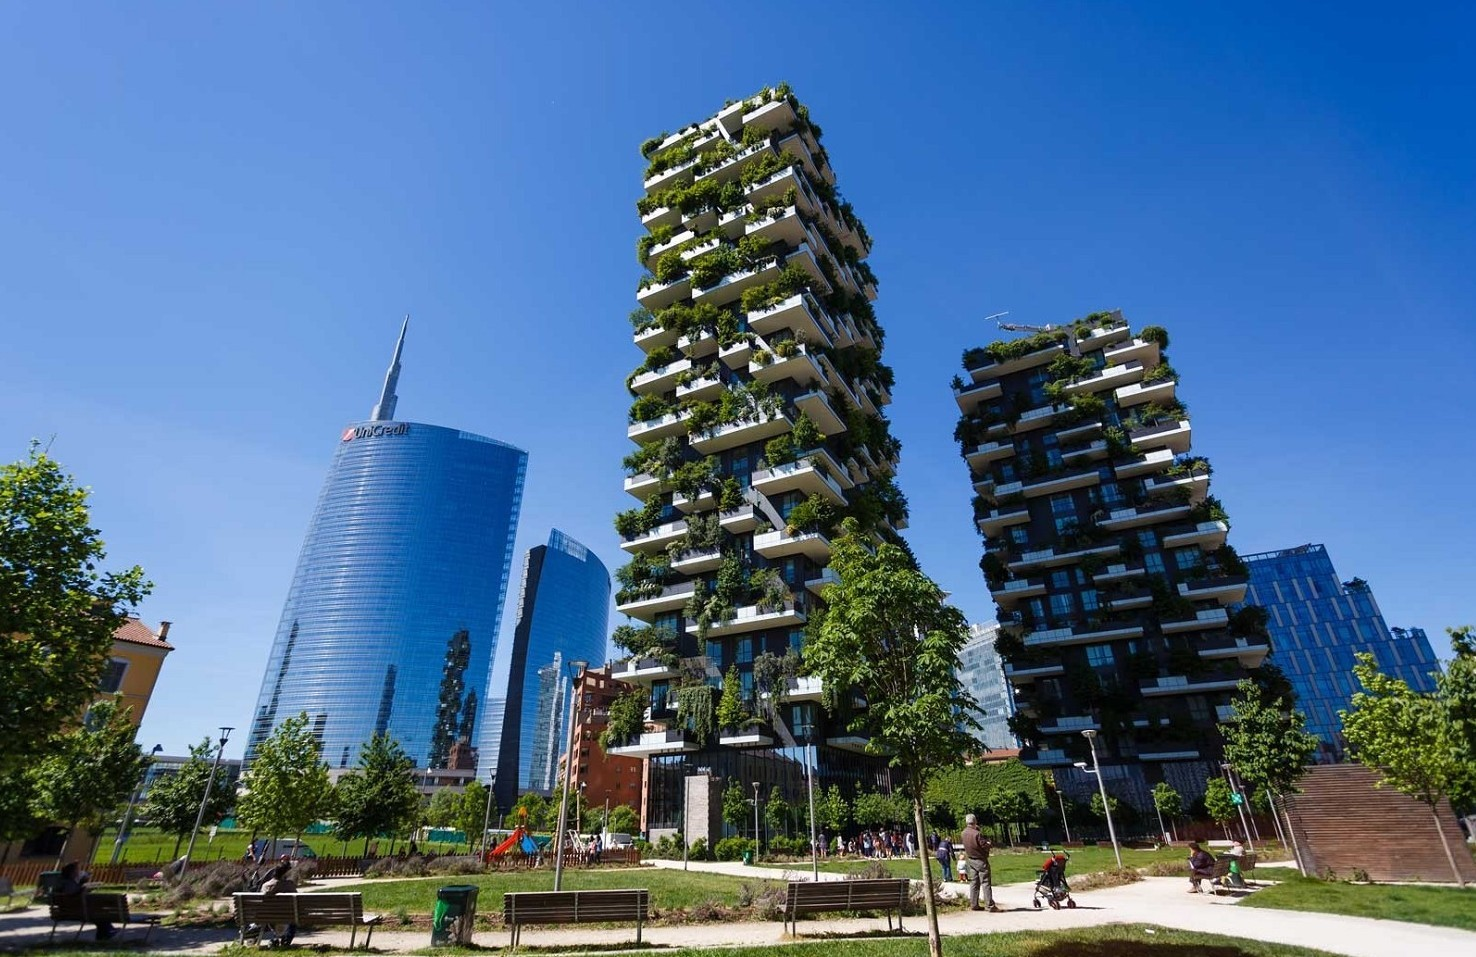 Bosco Verticale in Olanda � per le case